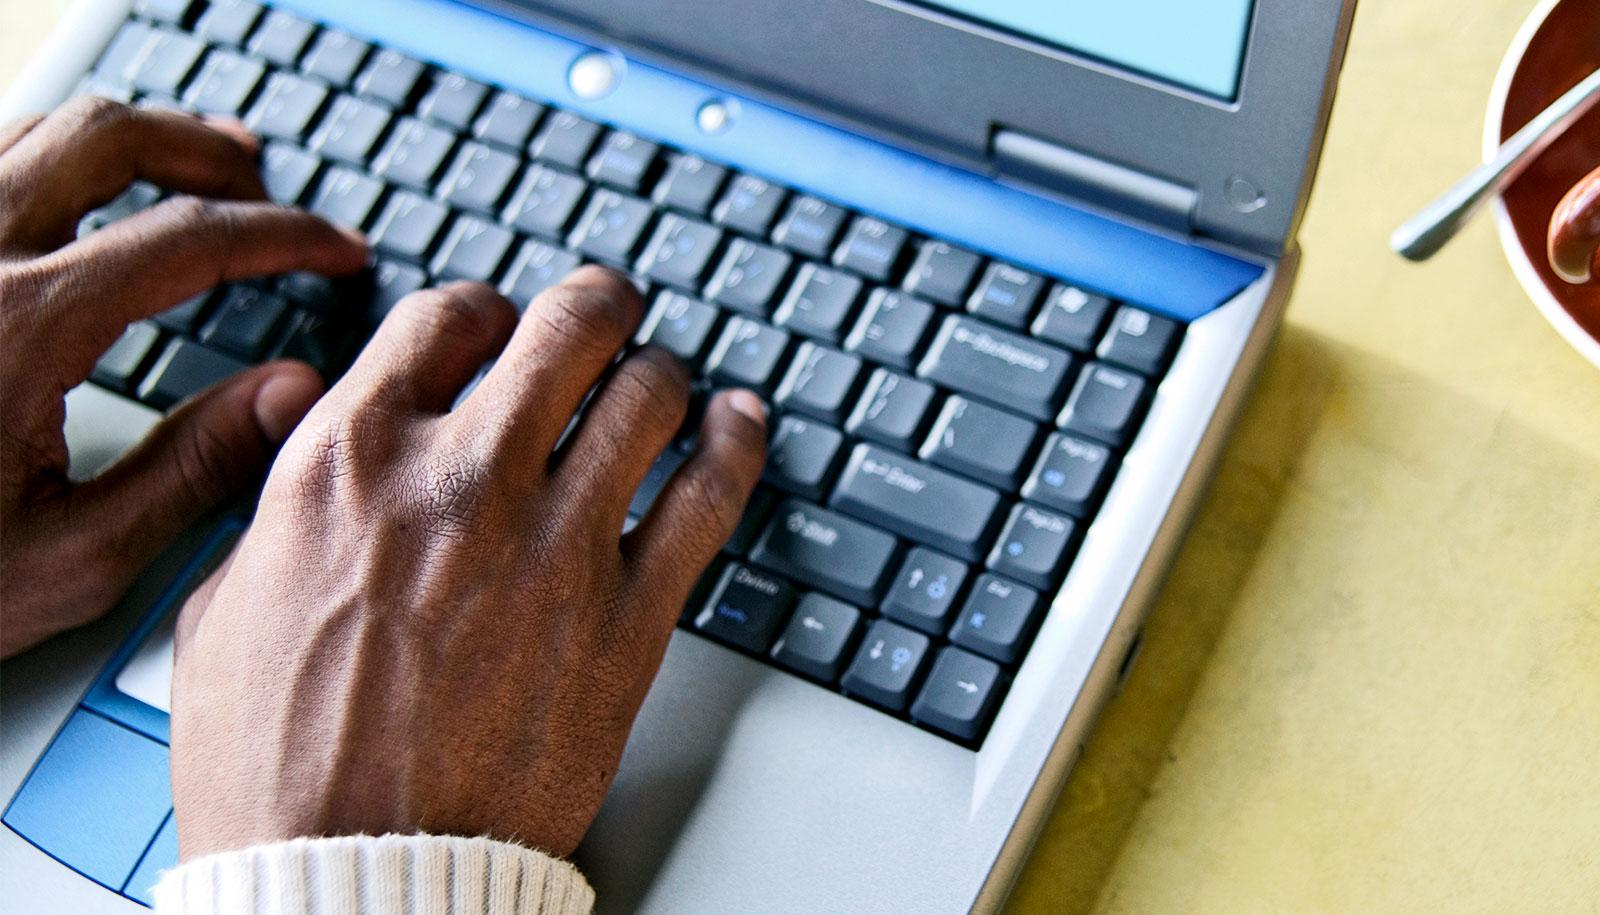 Hands sit on an old laptop computer keyboard on a yellow table